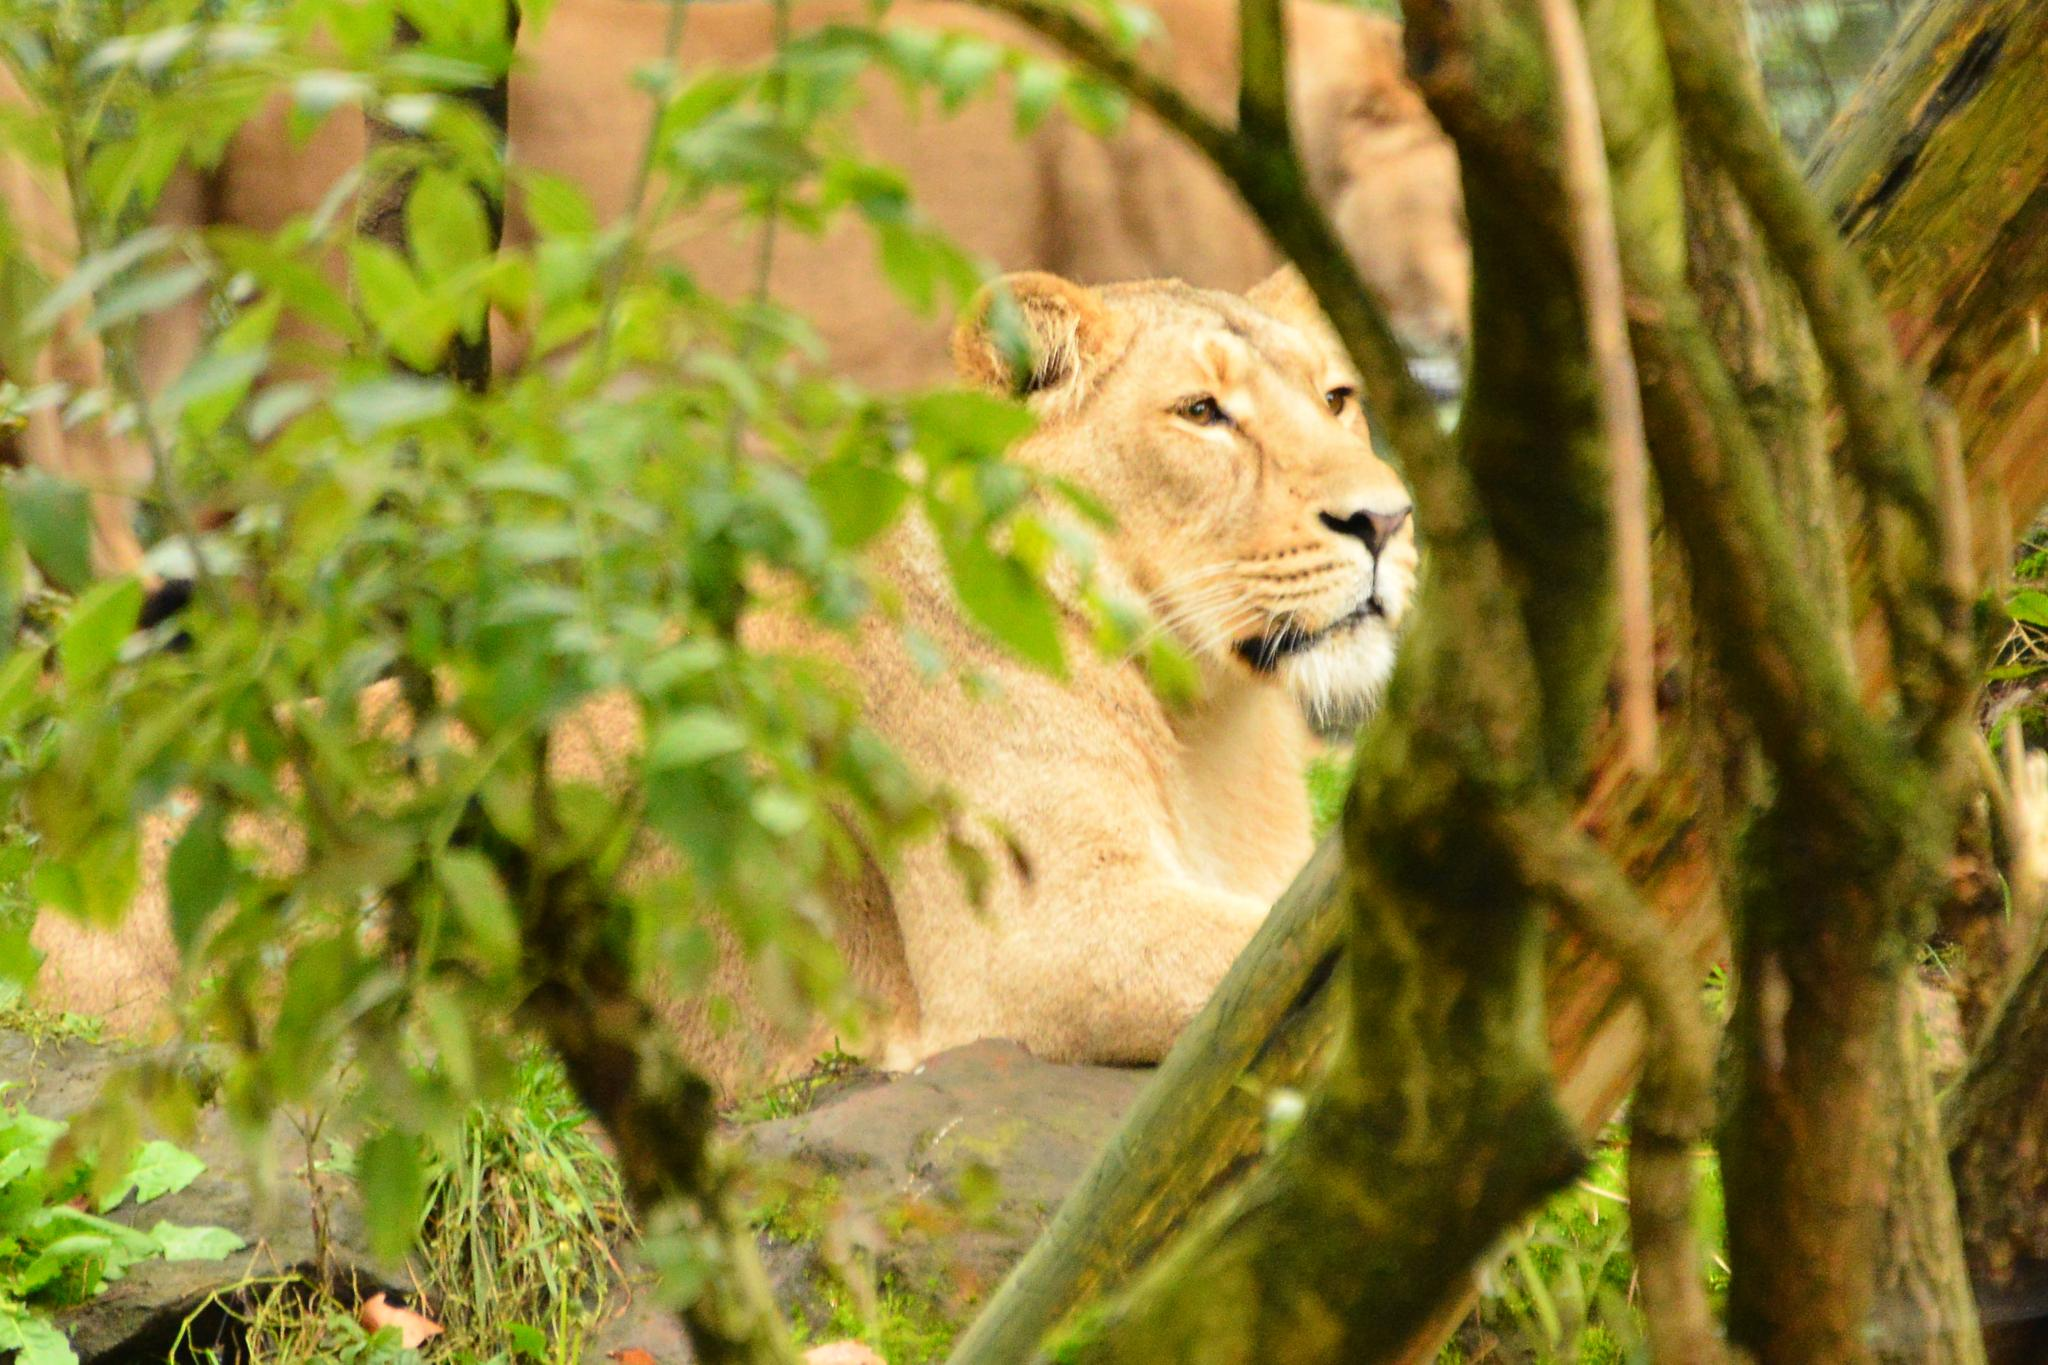 Lioness hiding by tony.barber.71